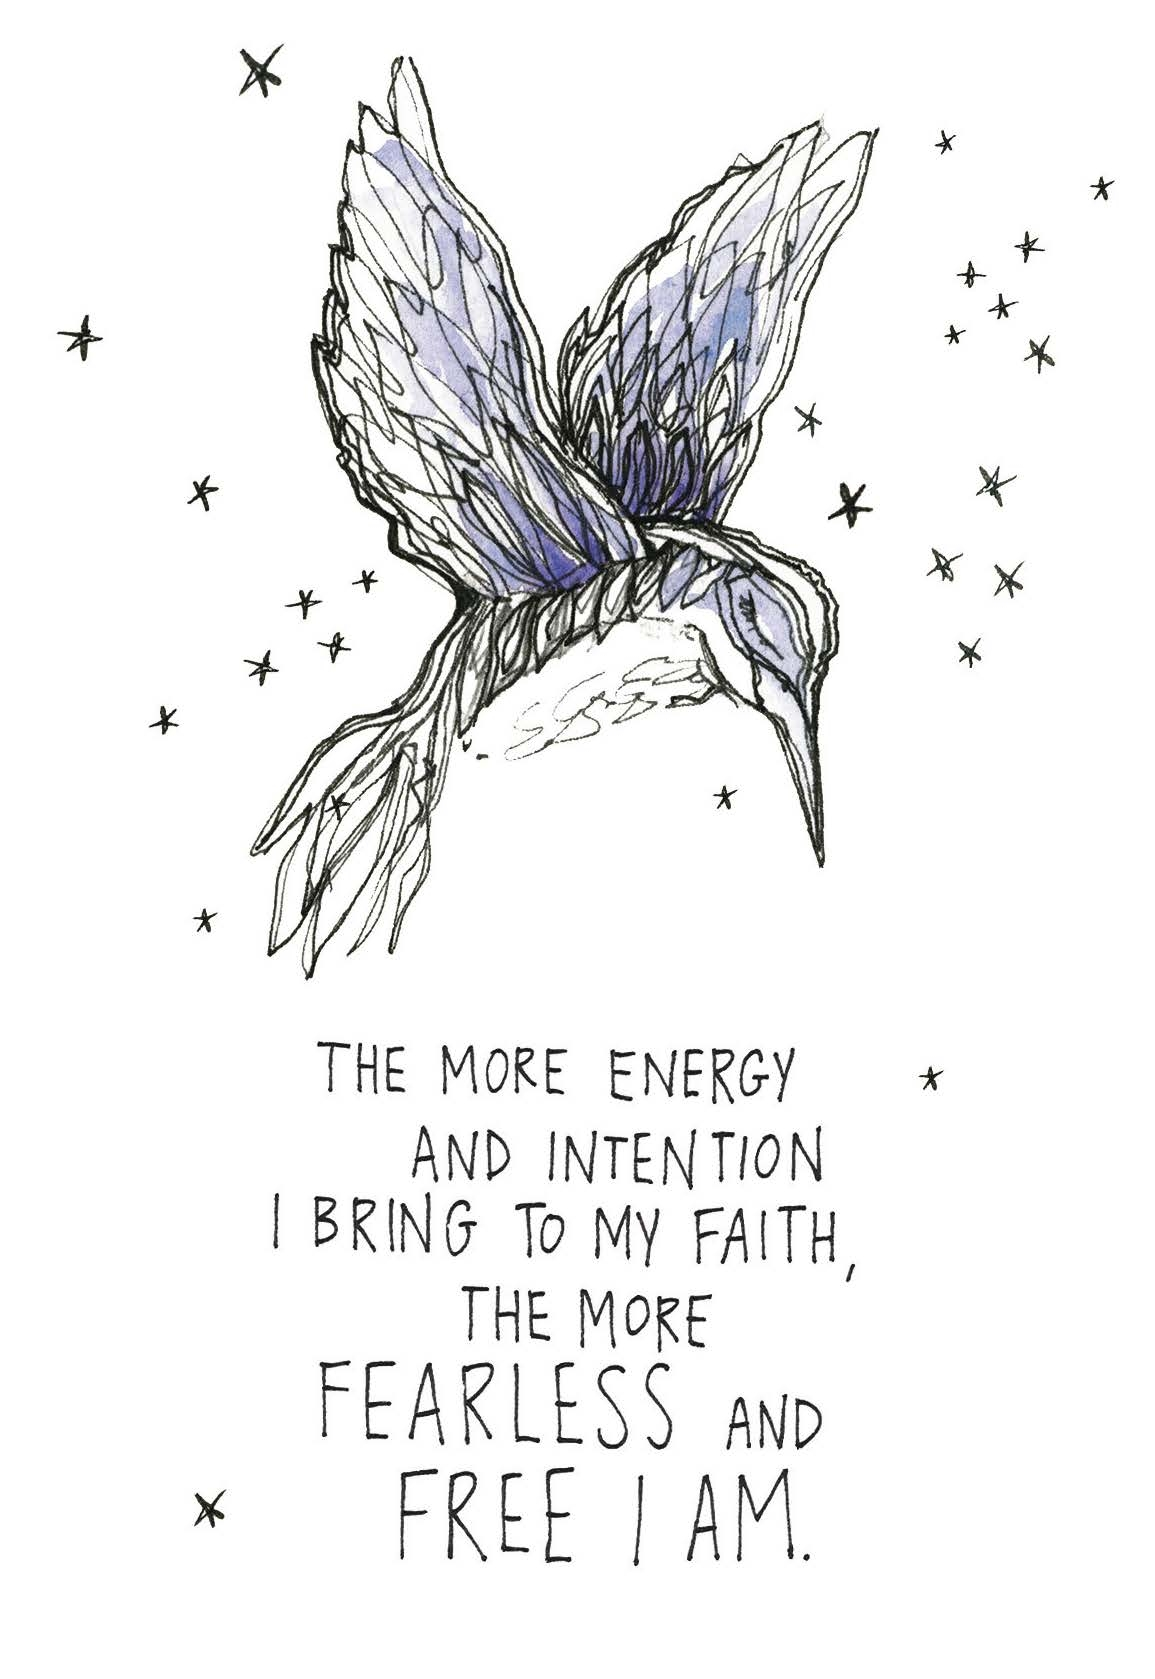 The more energy and intention I bring to my faith, the more fearless and free I become